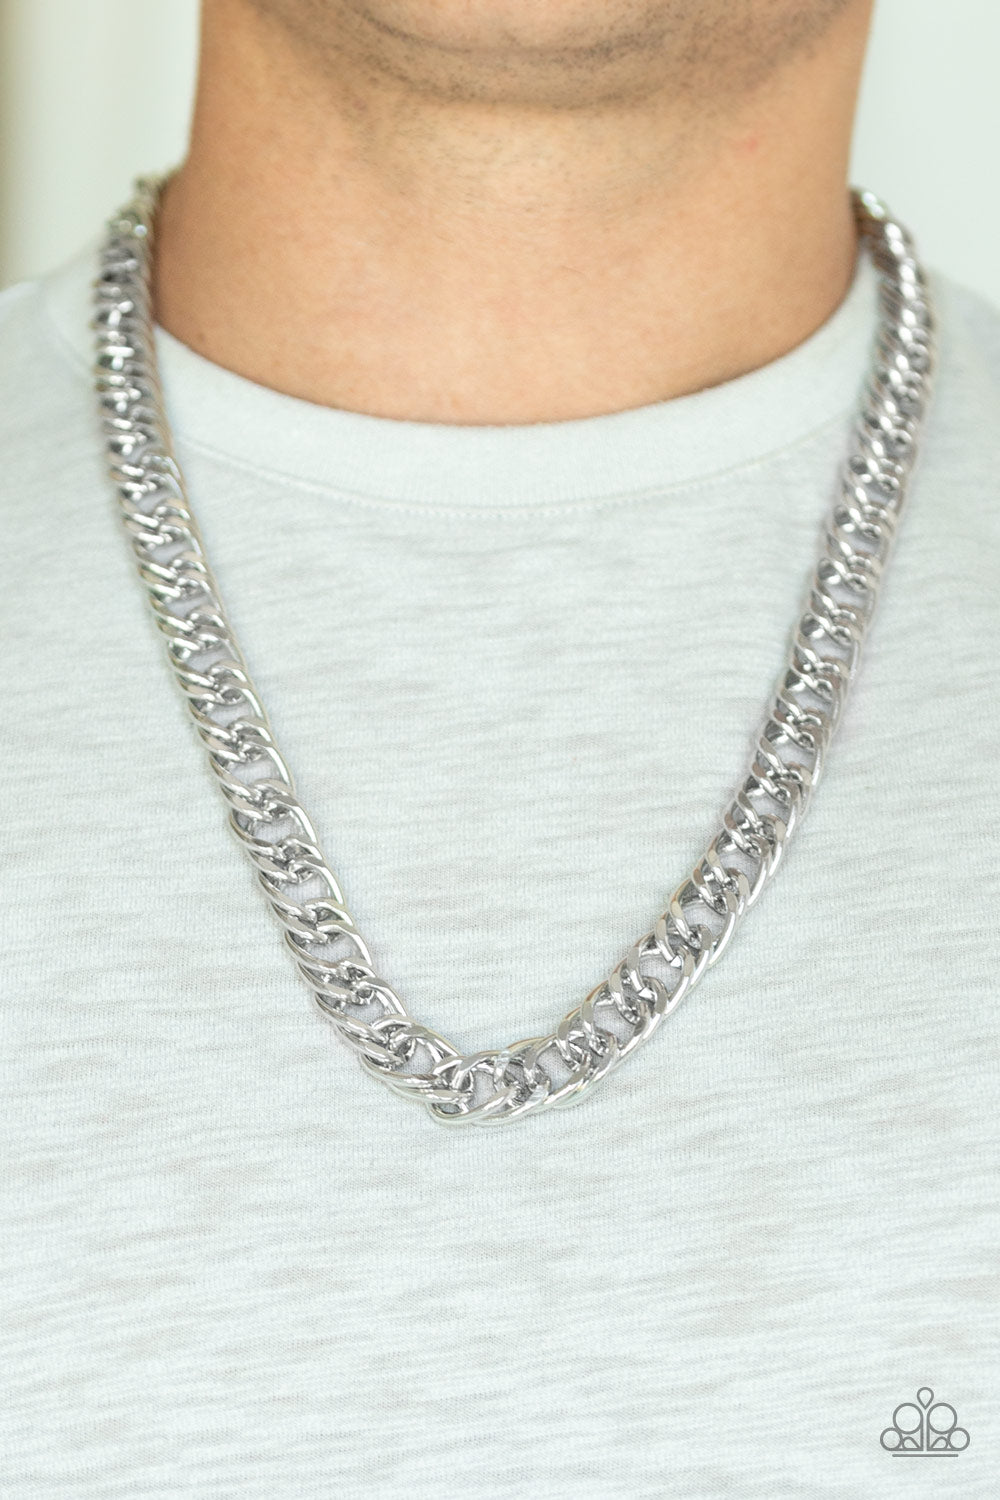 Paparazzi - Omega - Silver Necklace - Classy Jewels by Linda